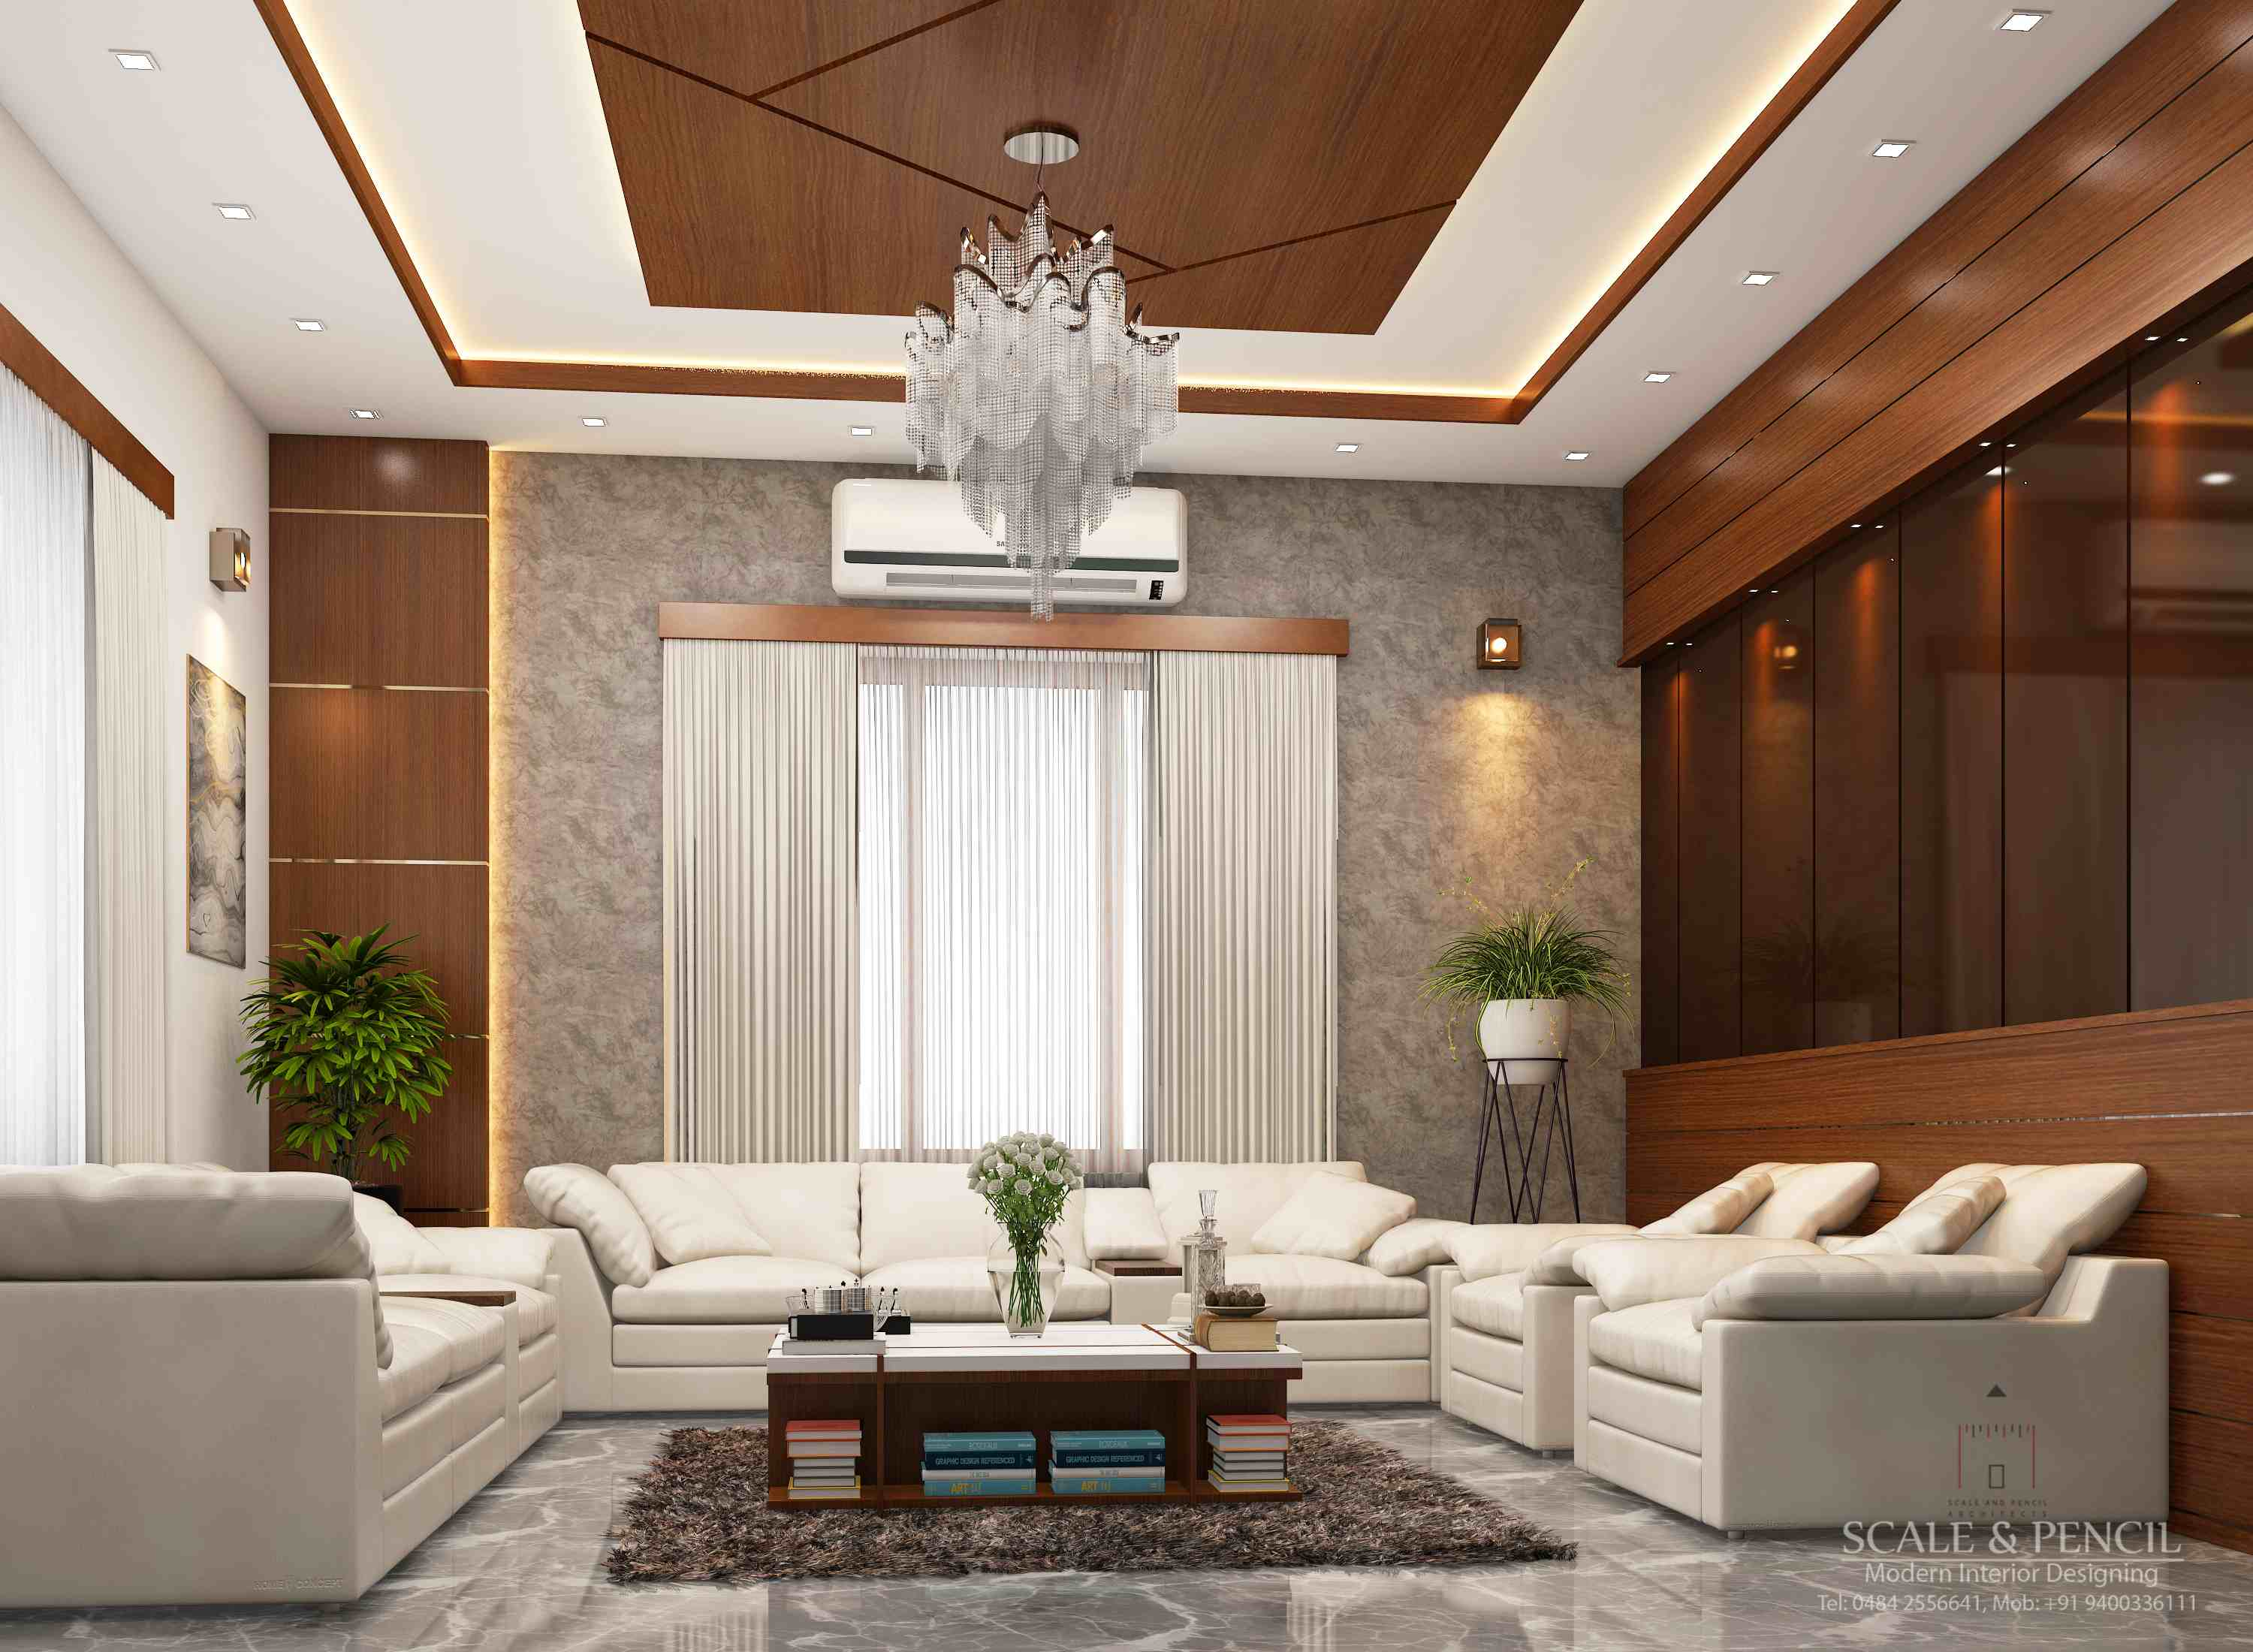 House Interior Design In Kochi Ernakulam Kerala